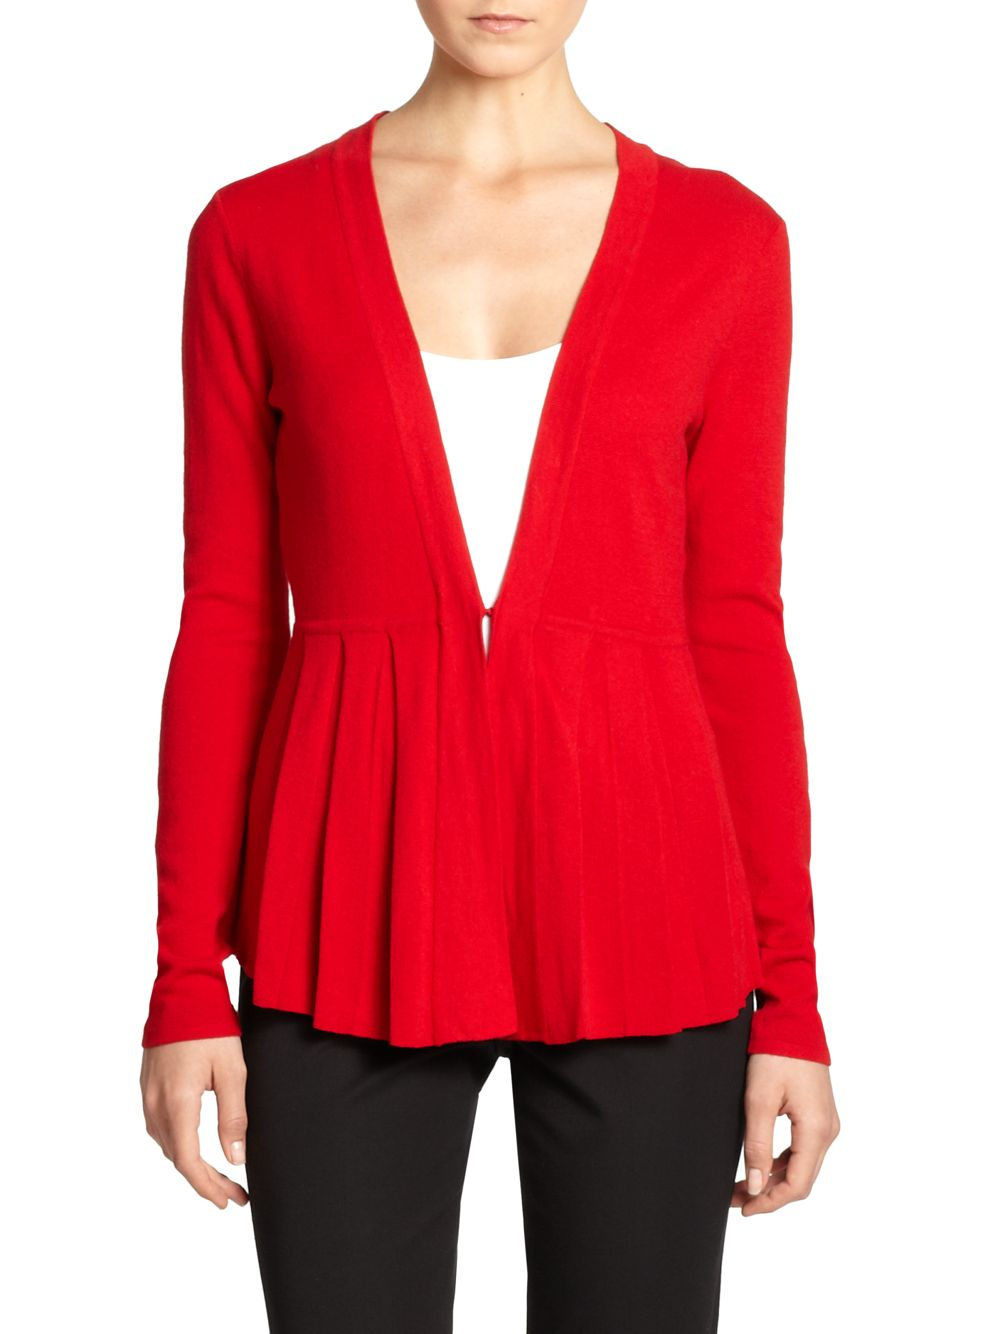 Knitting Pattern Peplum Cardigan : Saks fifth avenue black label Knit Pleated Peplum Cardigan in Red Lyst